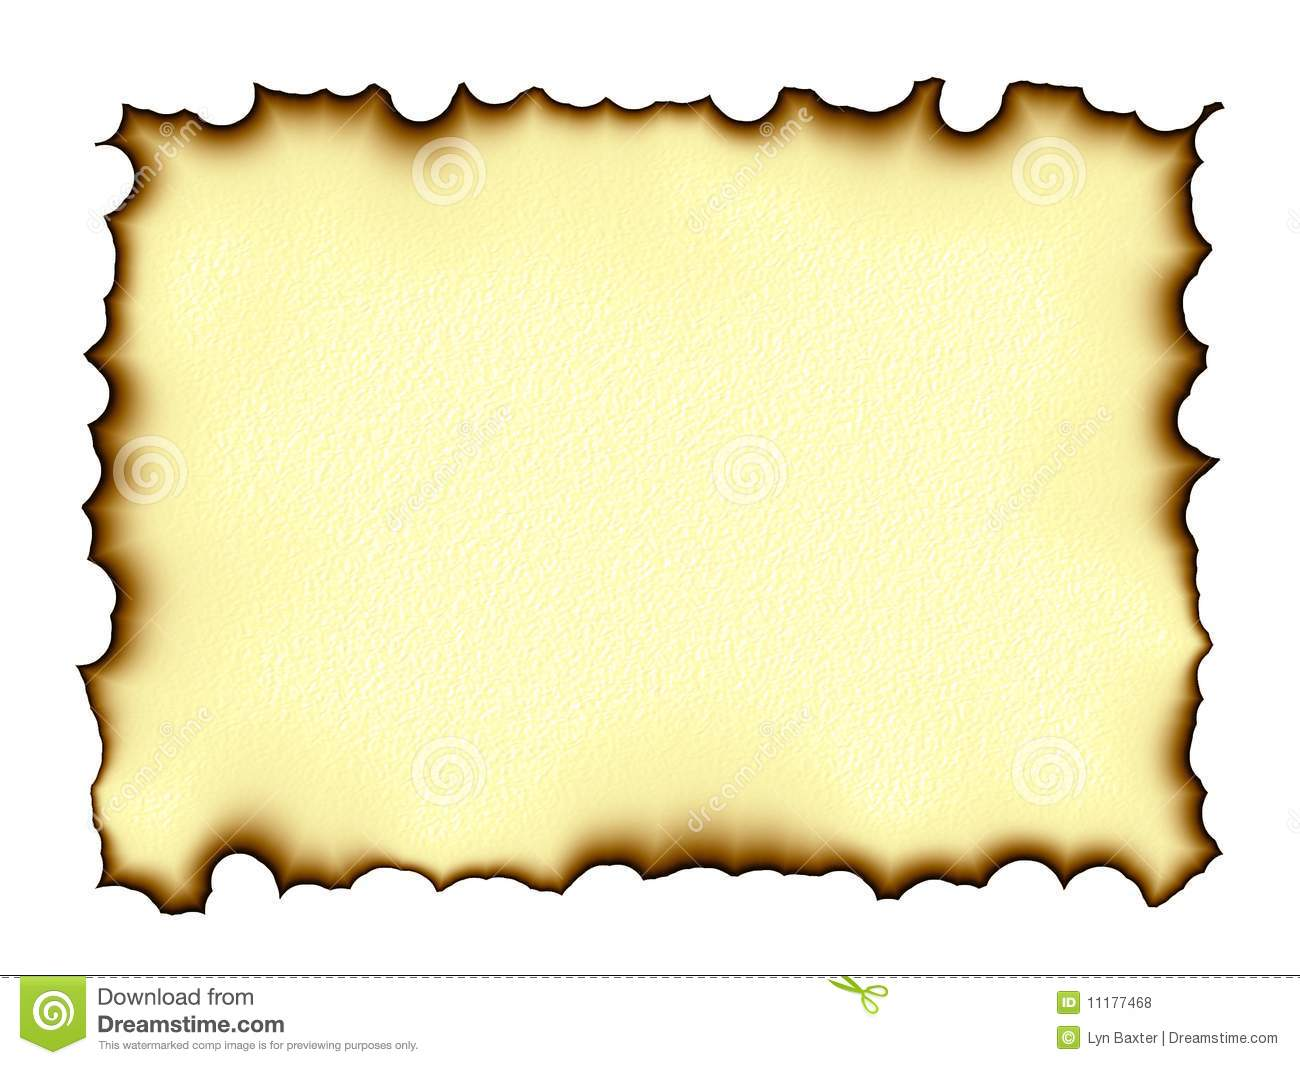 Royalty Free Stock Photos Burnt Edges Parchment Image11177468 on Blank English Sheets